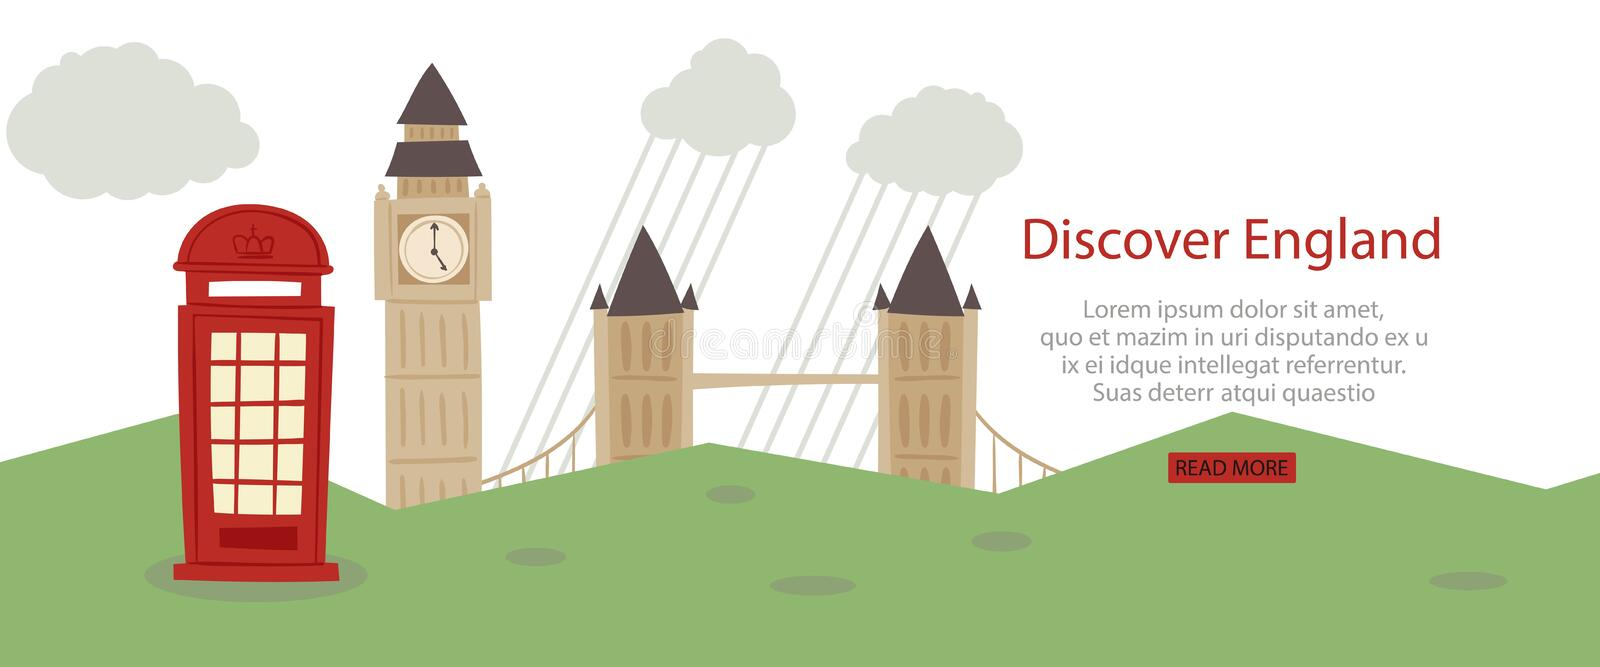 Discover England banner web design vector illustration. London tourist sights and symbols of Great Britain, welcome to stock illustration